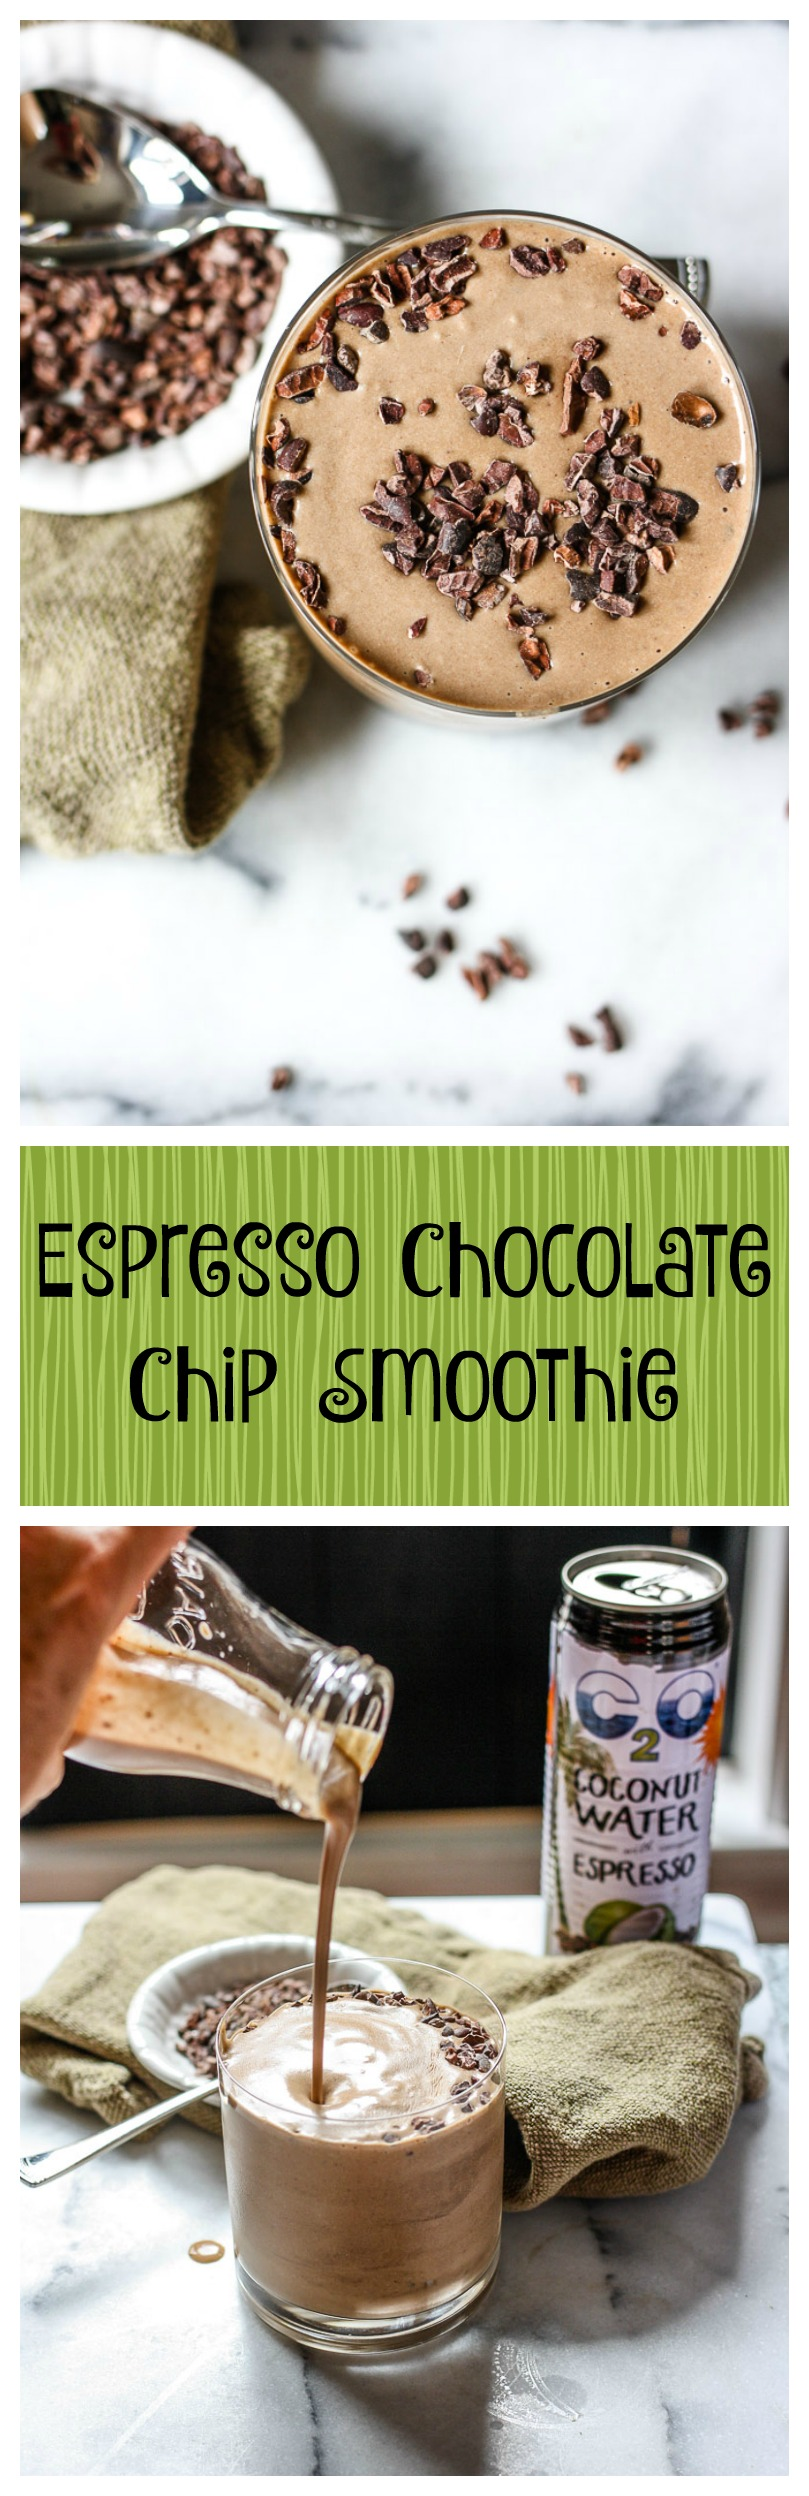 espresso chocolate chip smoothie